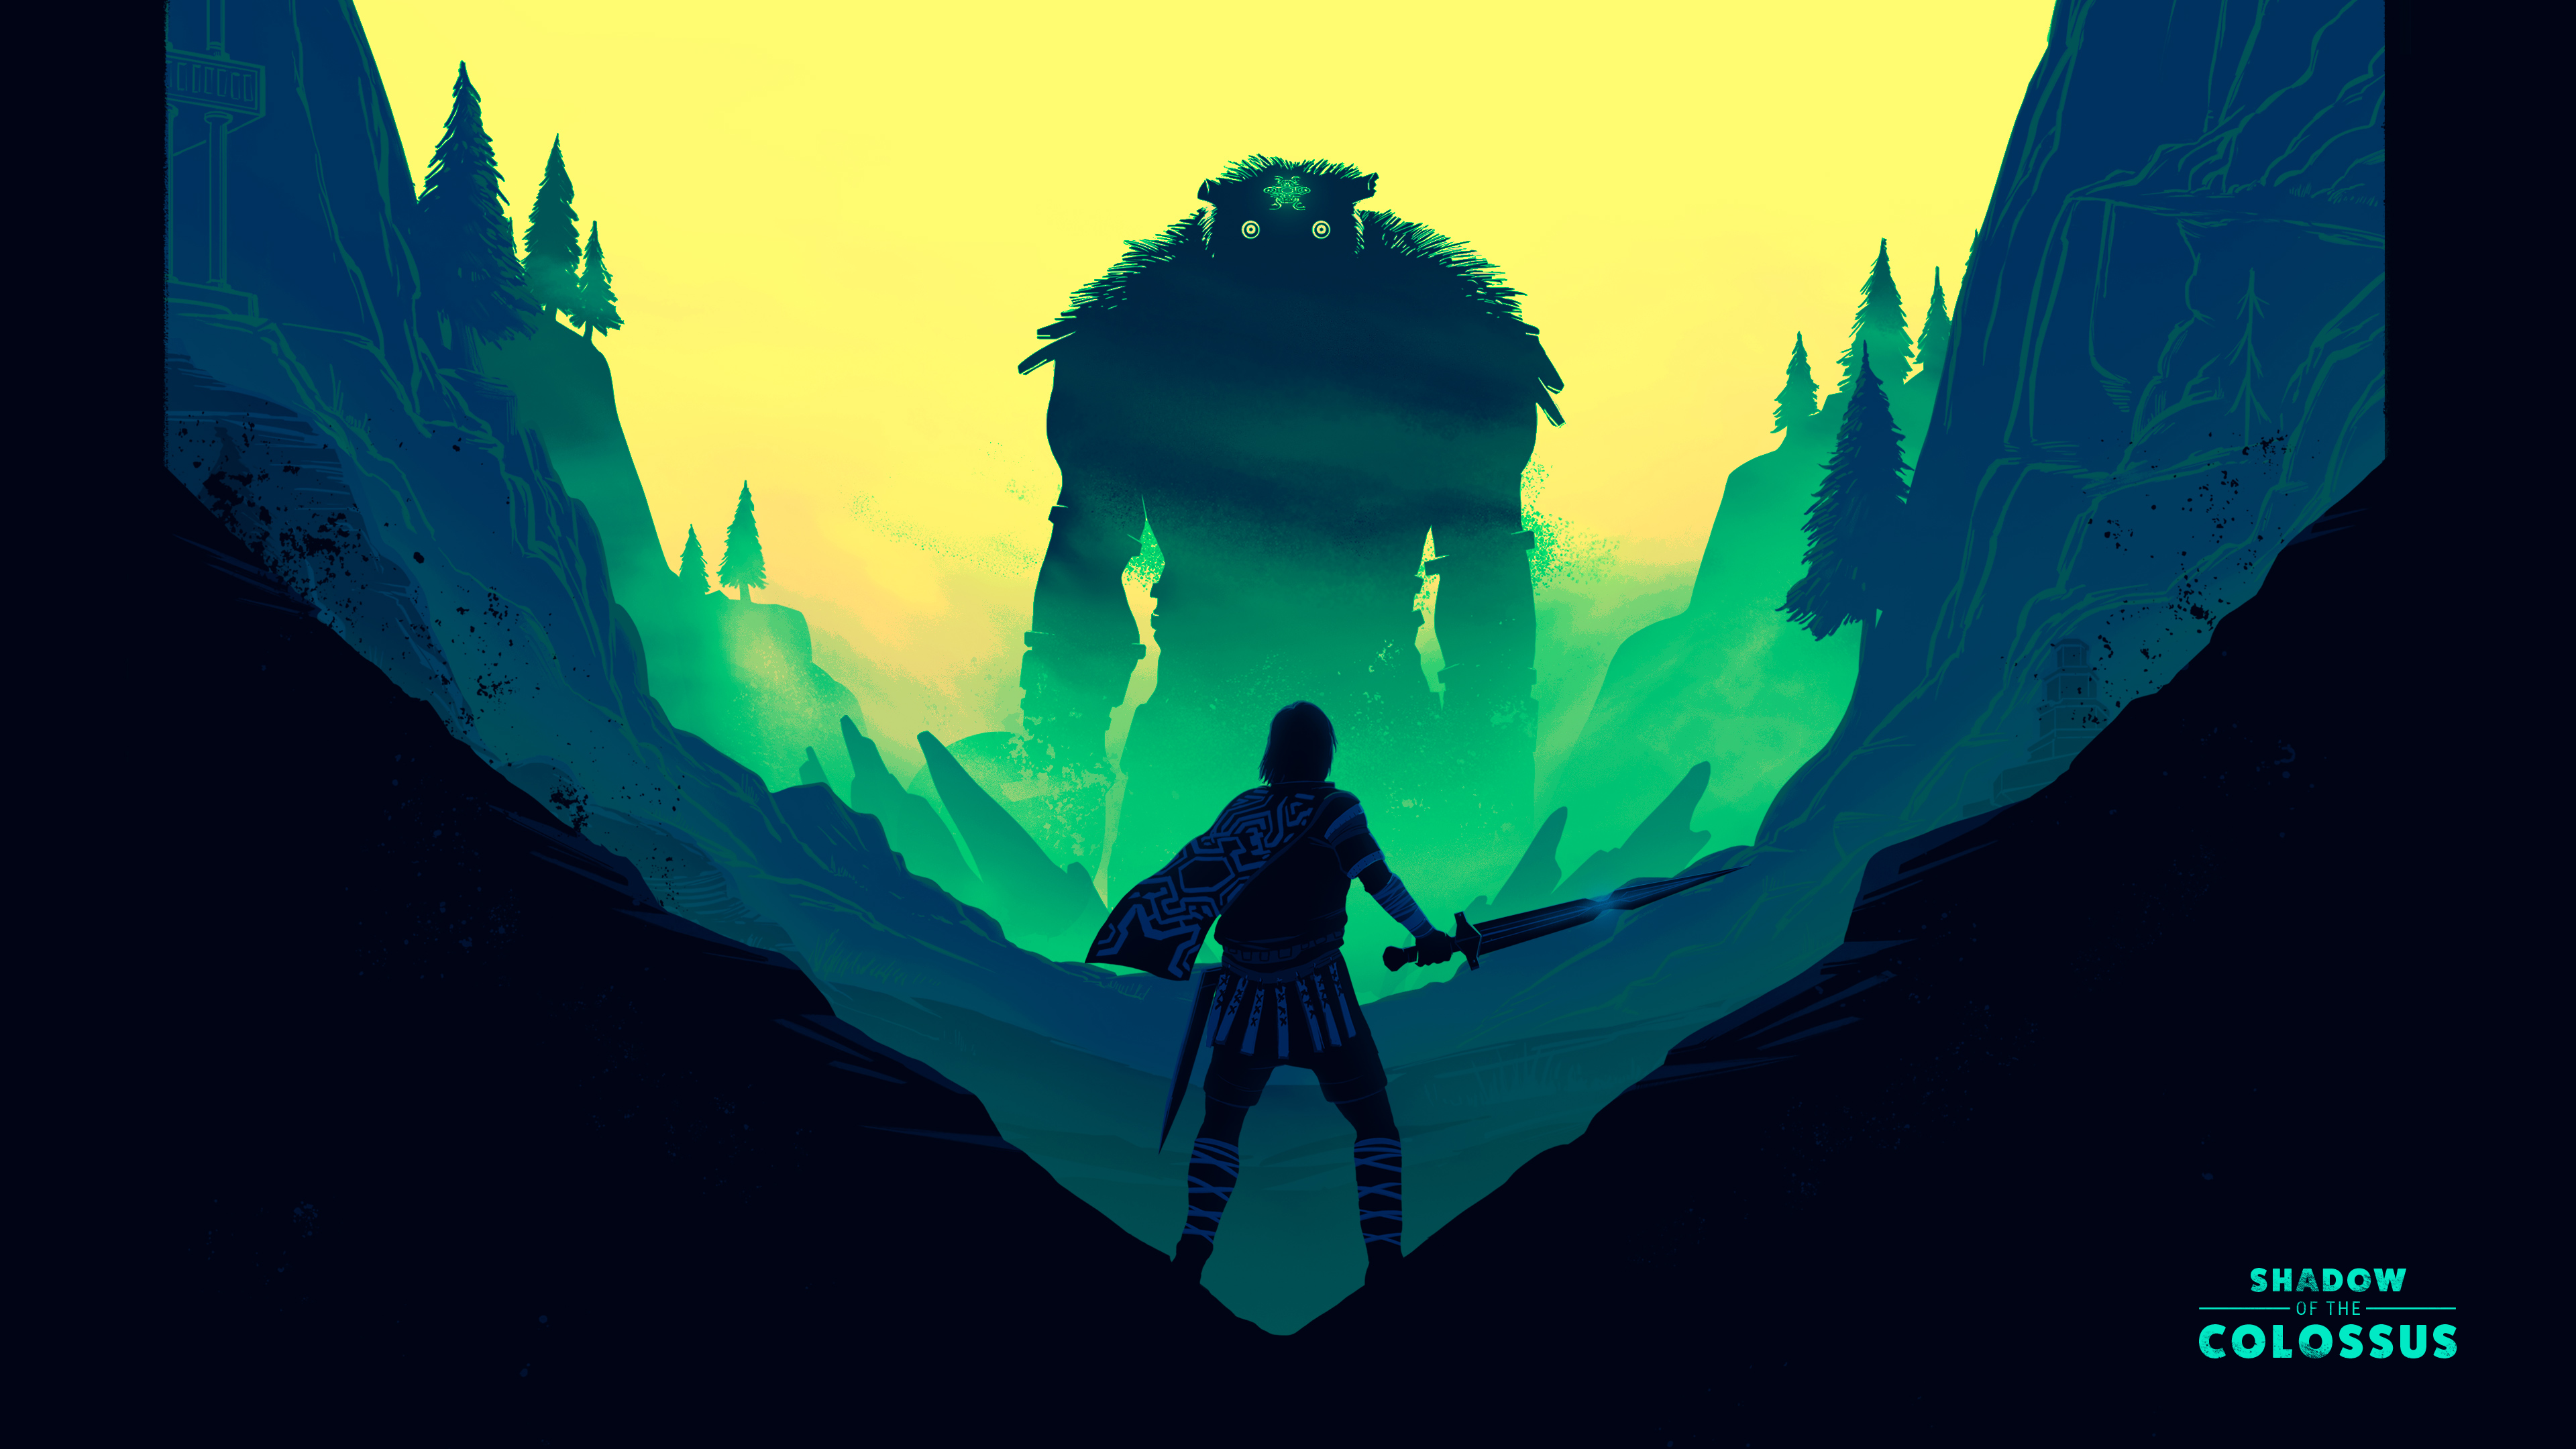 3840x2160 shadow of the colossus fan art illustration 4k - Shadow of the colossus iphone wallpaper ...